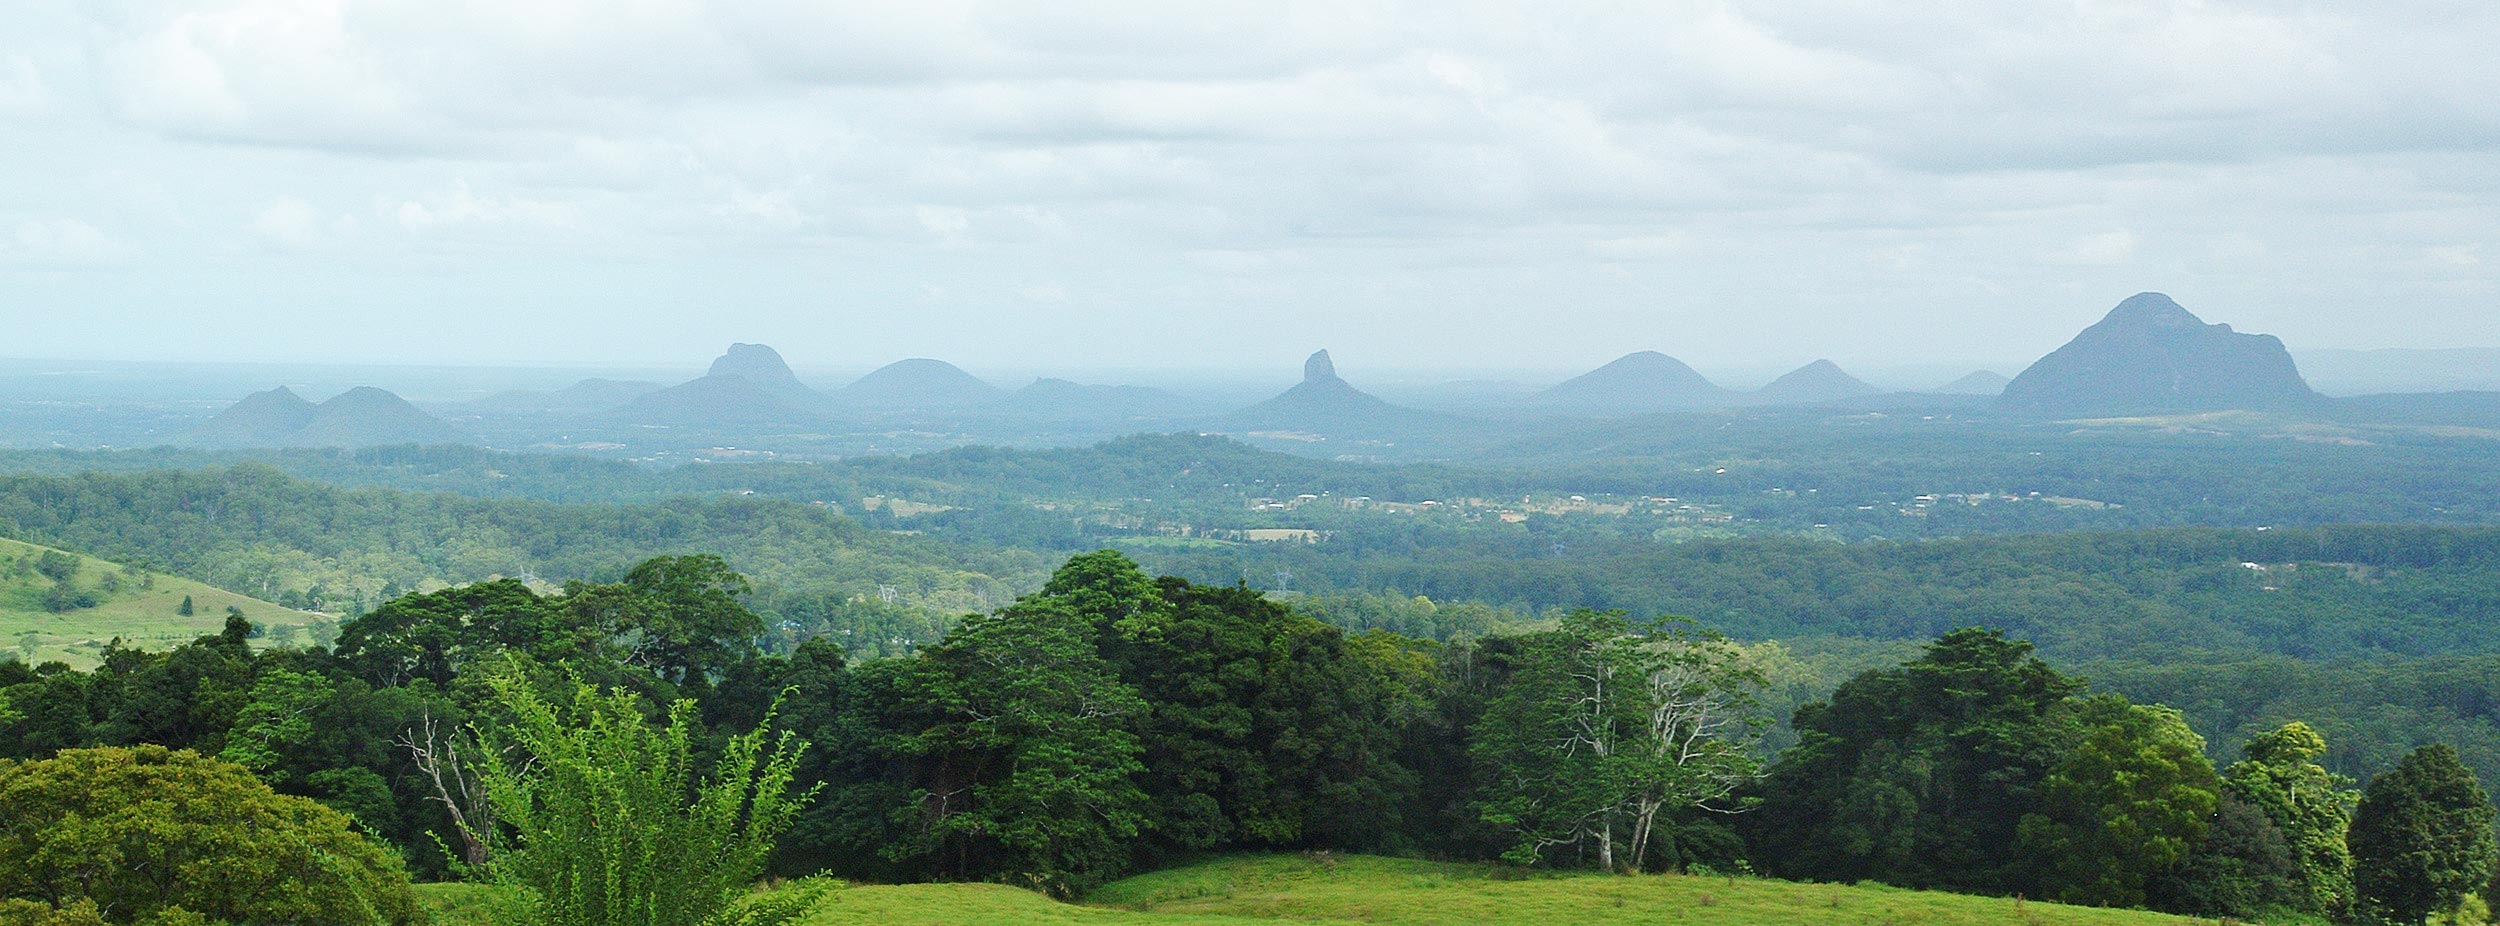 How Were The Glass House Mountains Formed?